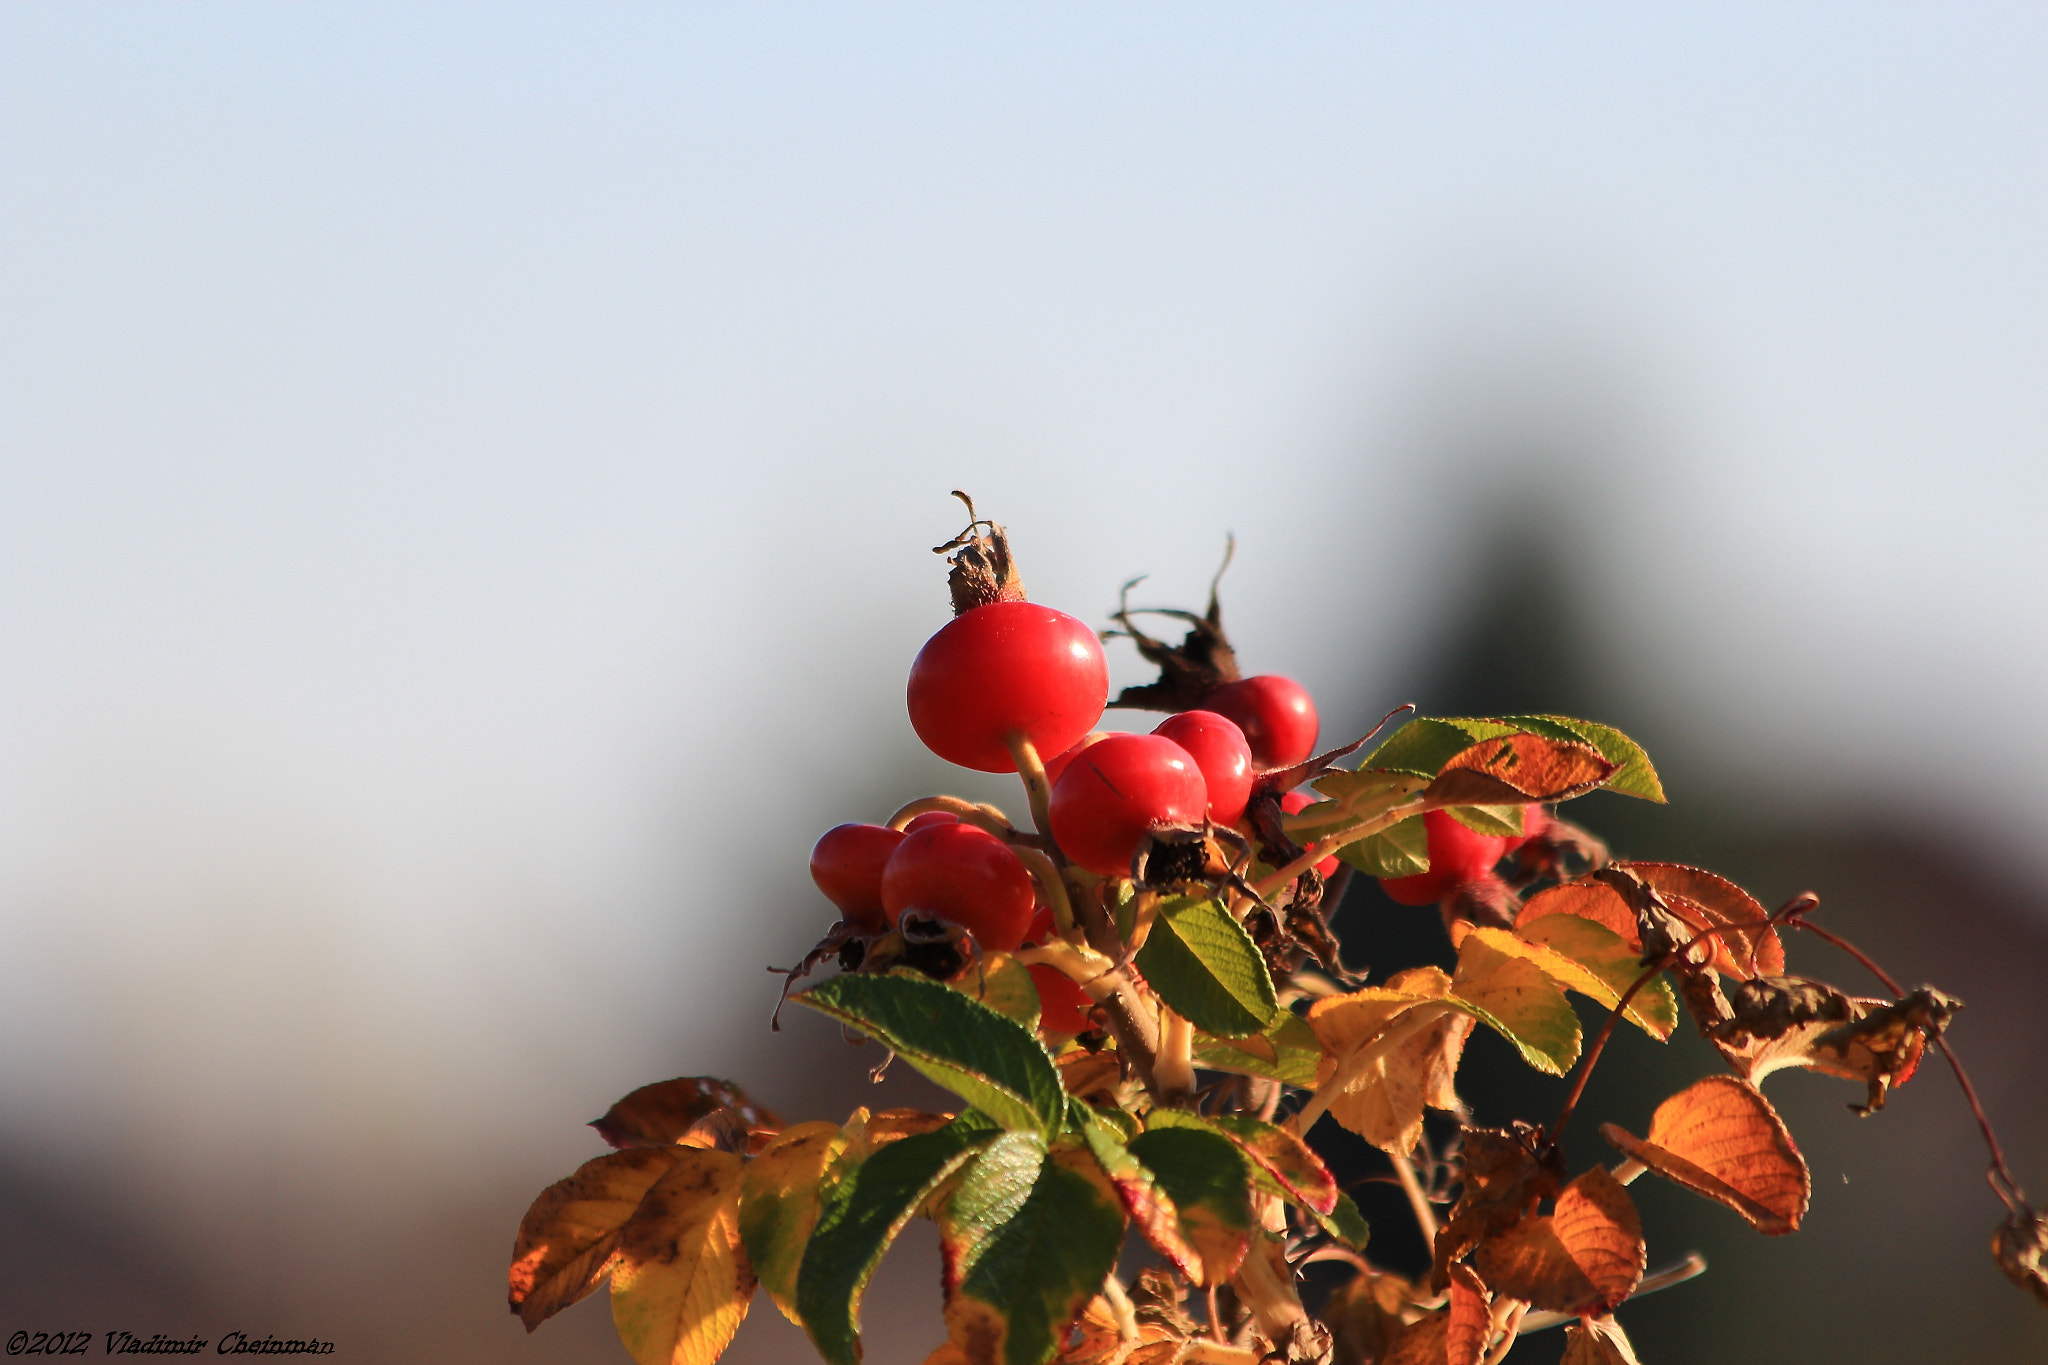 Photograph The Rose hip by Vladimir Cheinman on 500px